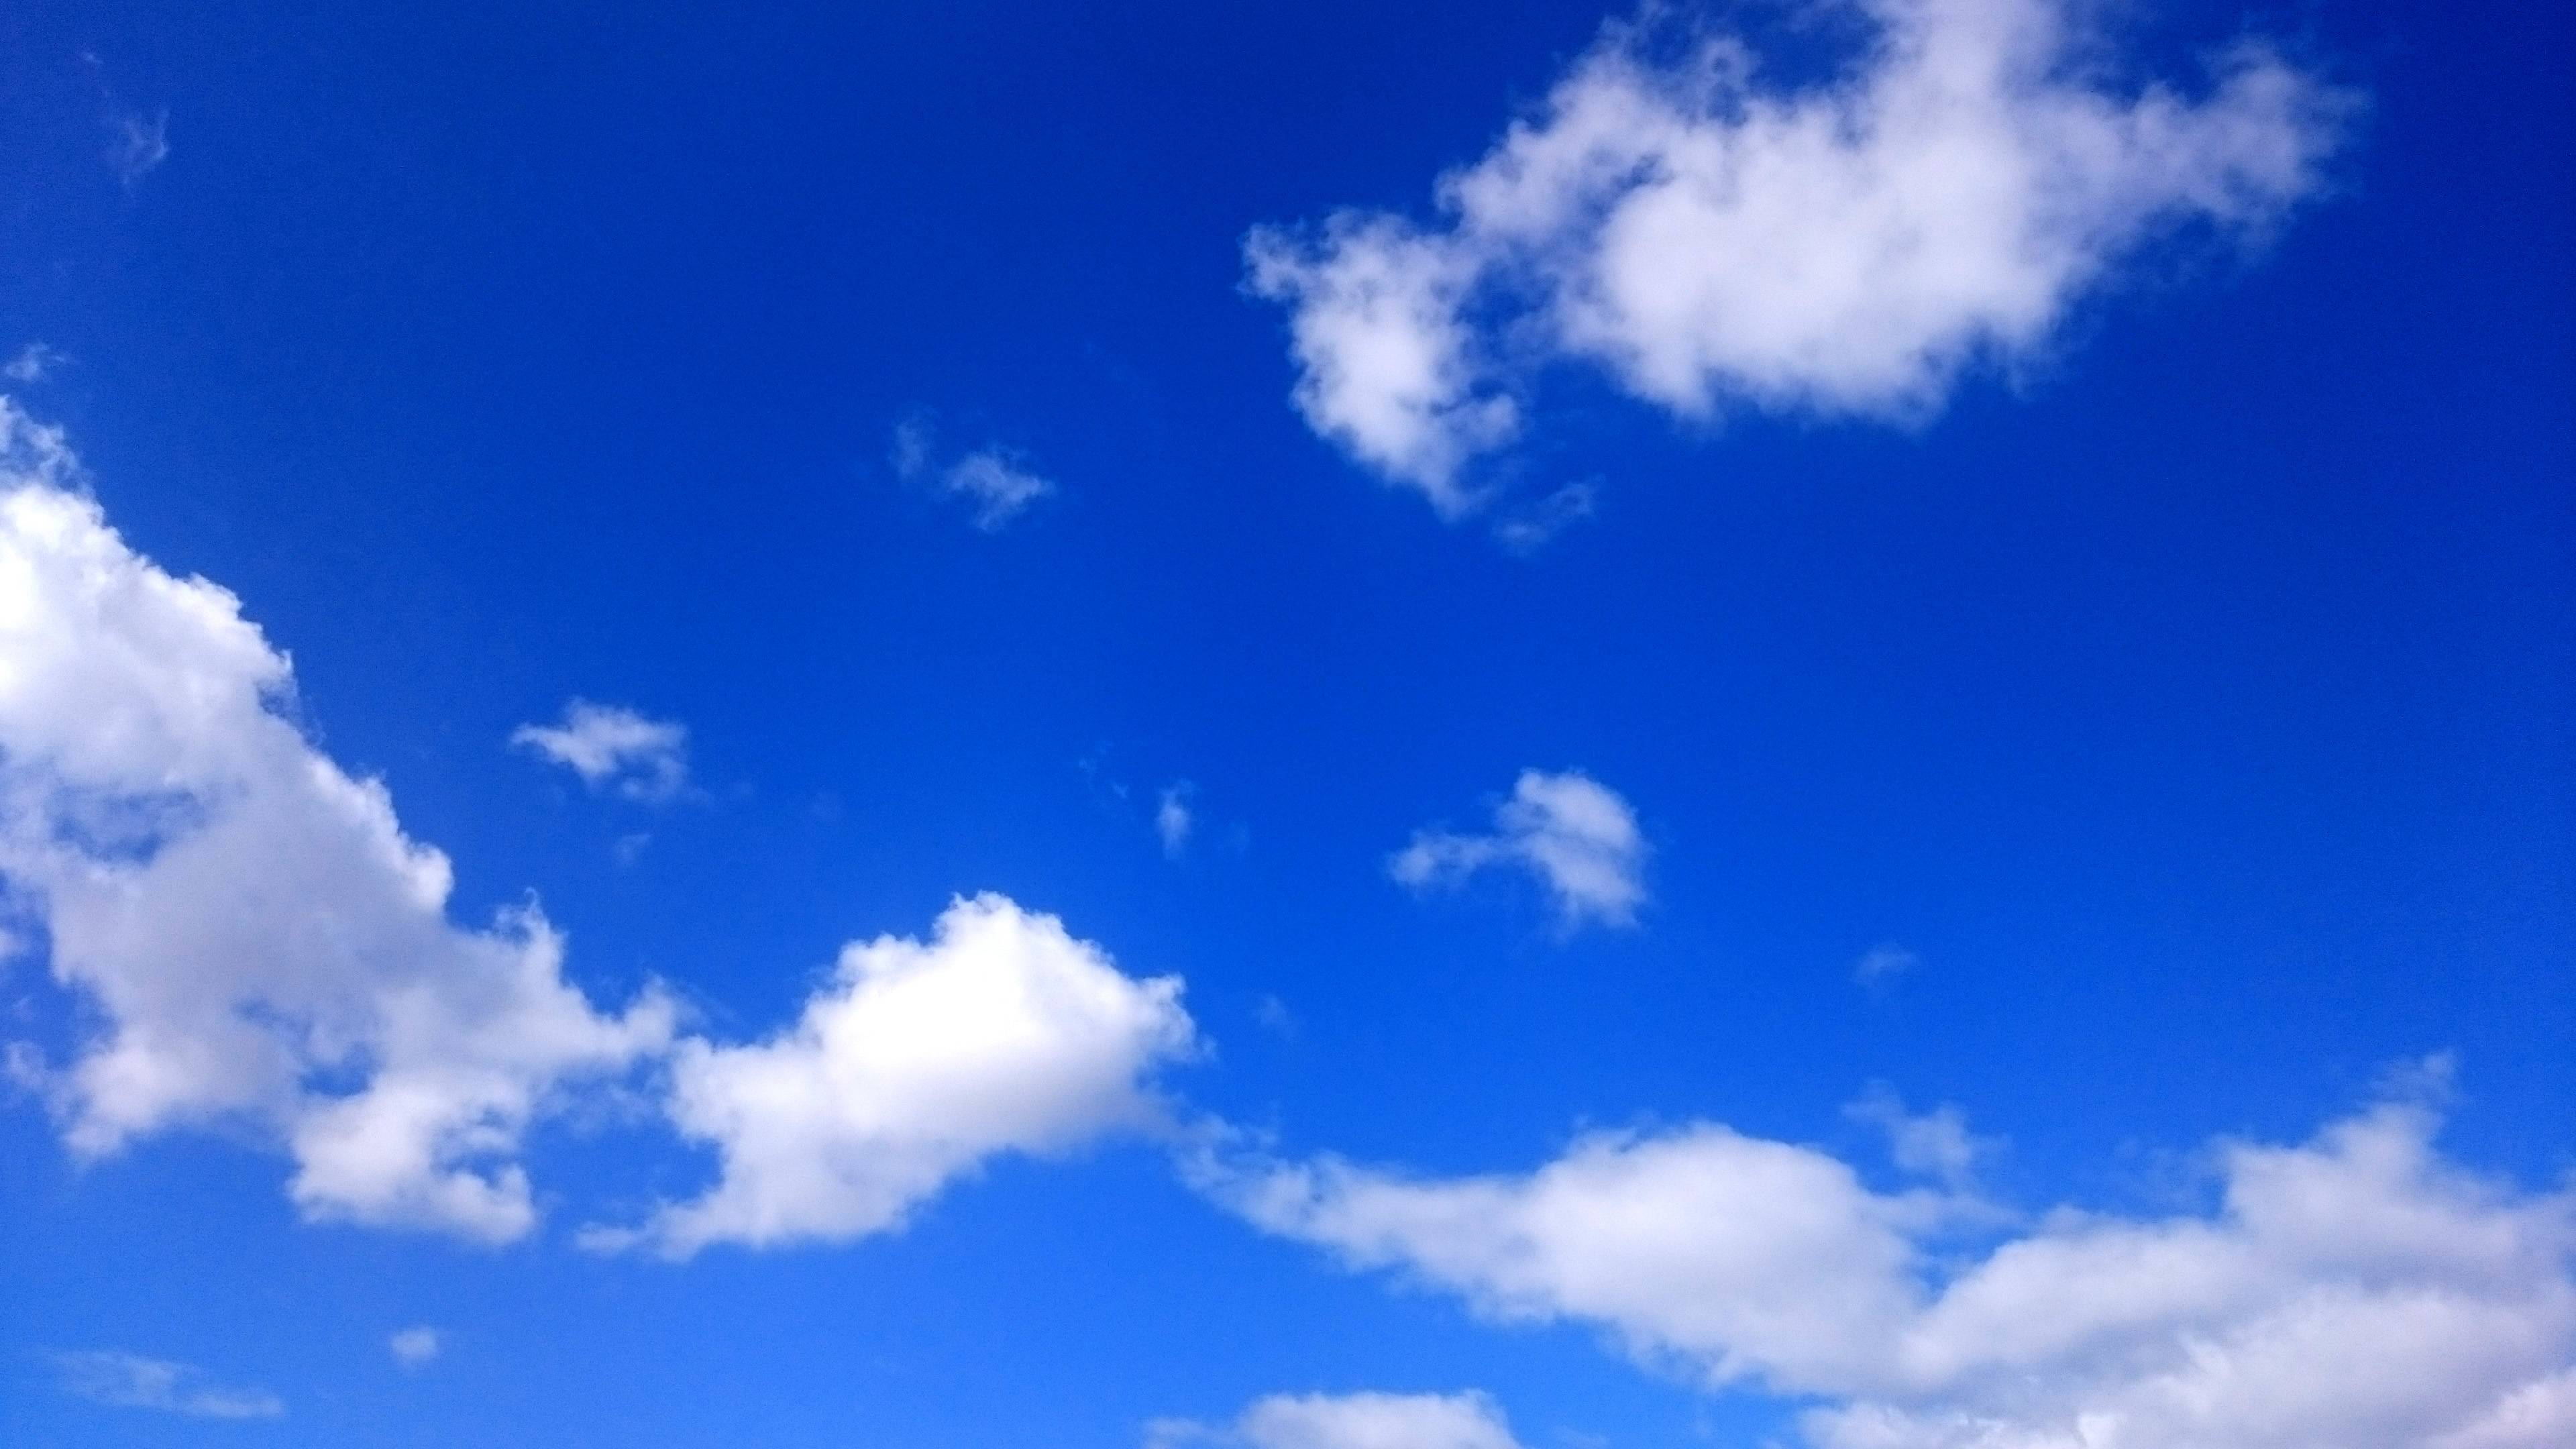 Beautiful blue sky with clouds | Born Brilliant image stock